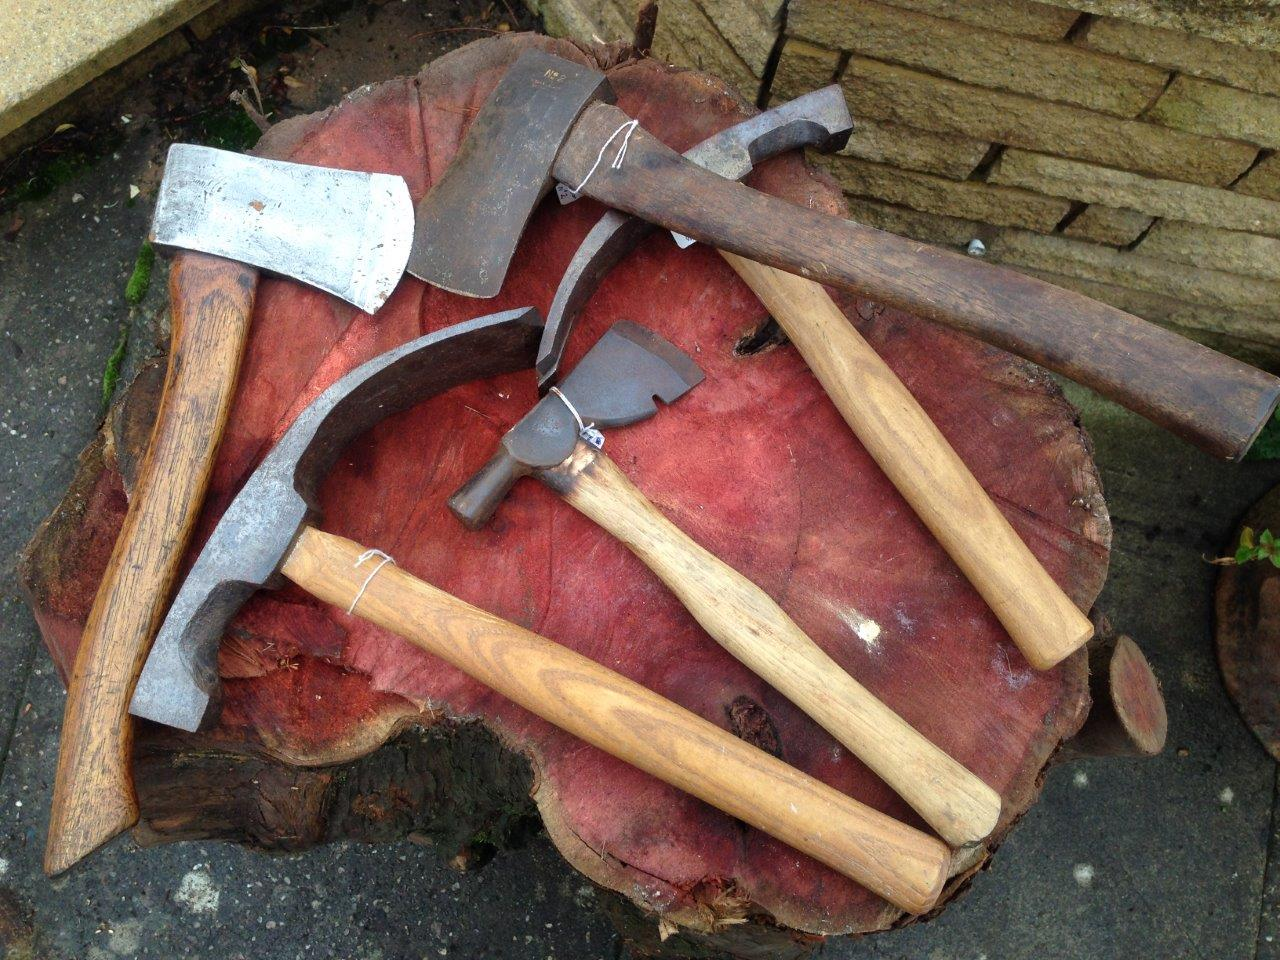 Axes & Hatchets